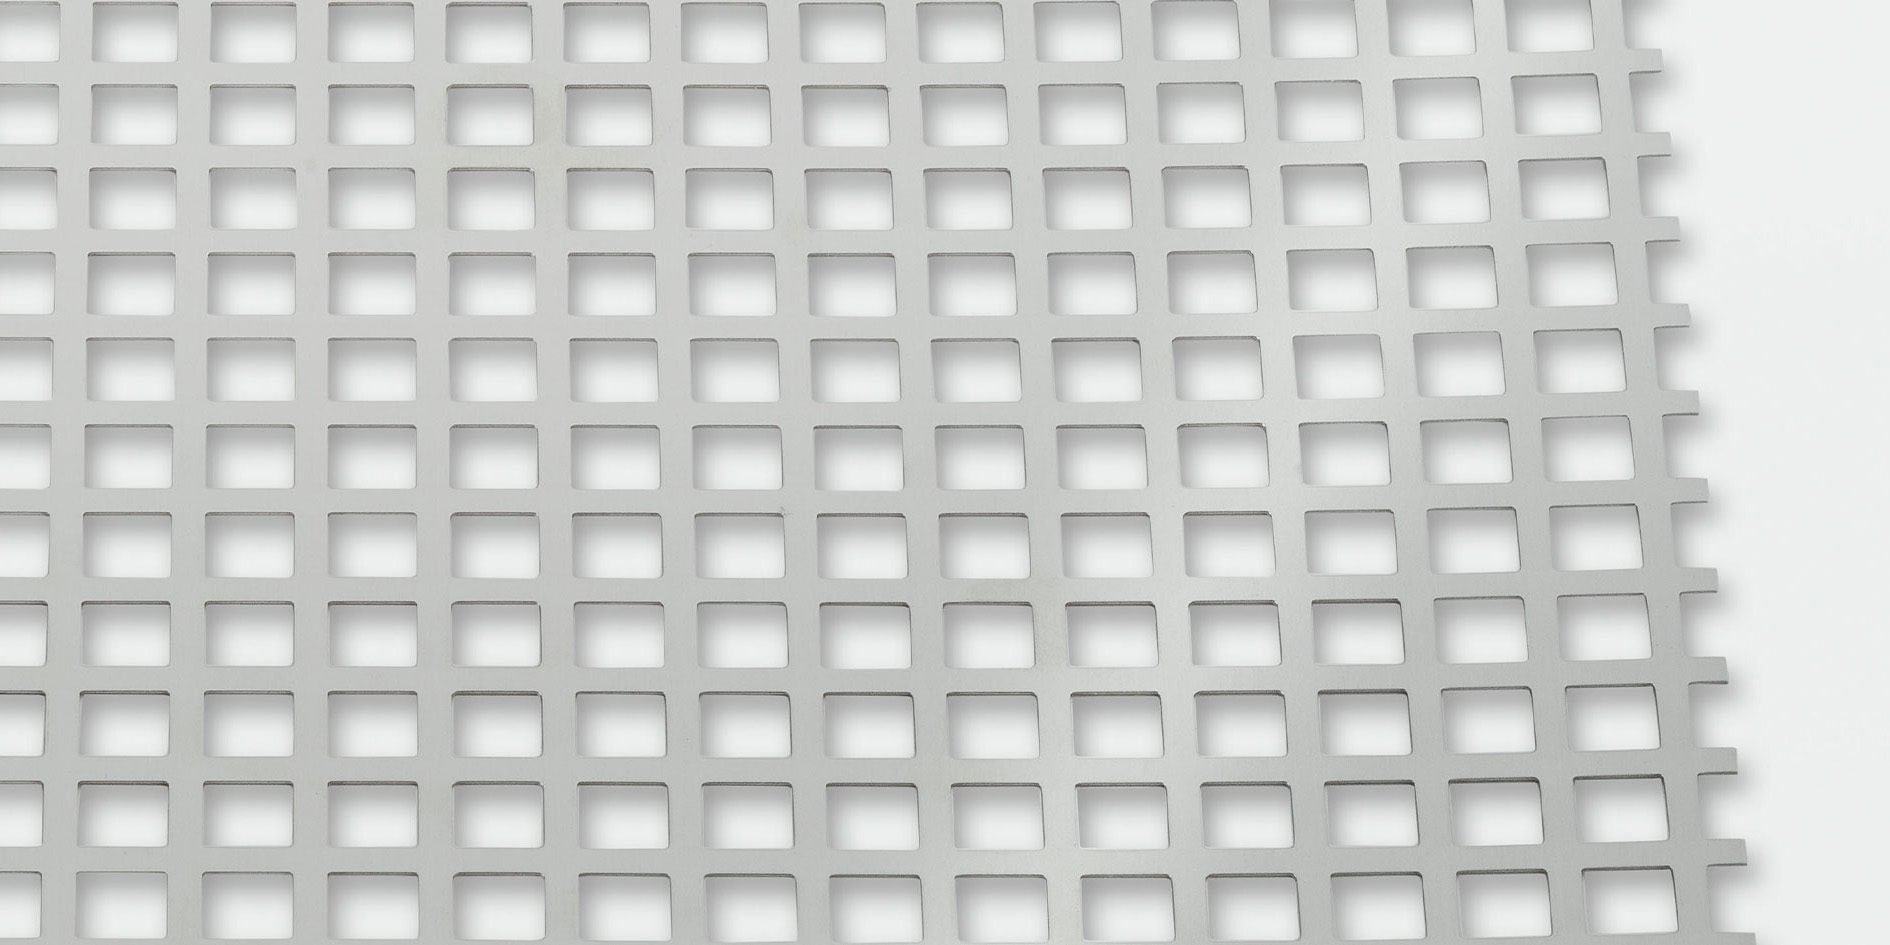 Sheet with square perforations